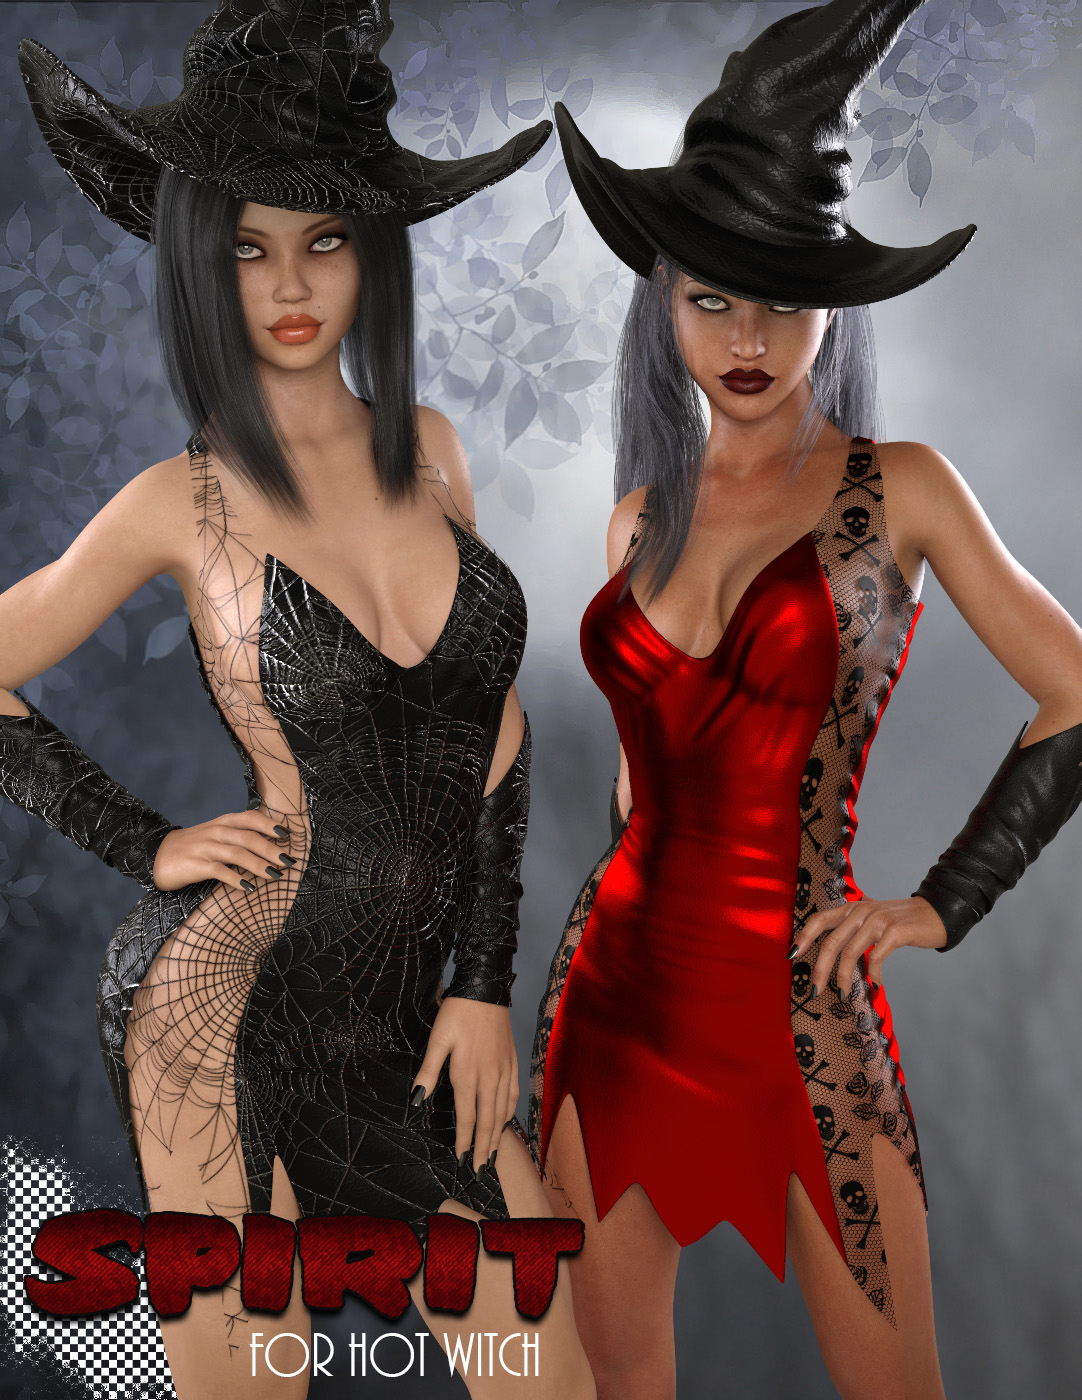 Spirit For Hot Witch